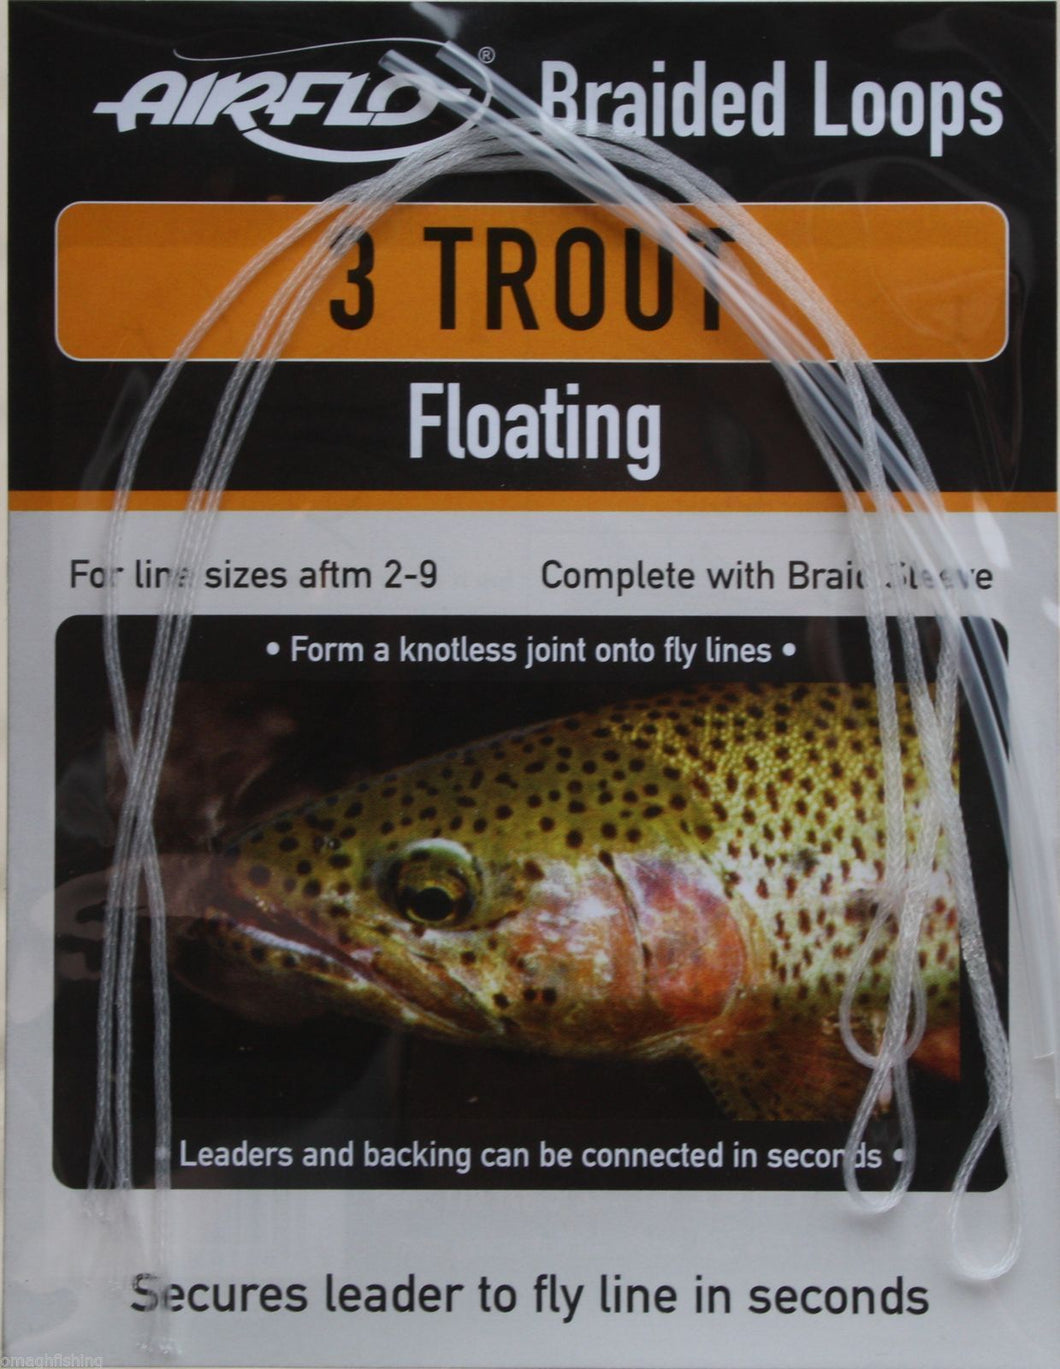 Airflo 3 Trout Braided Loops  Floating or Sinking